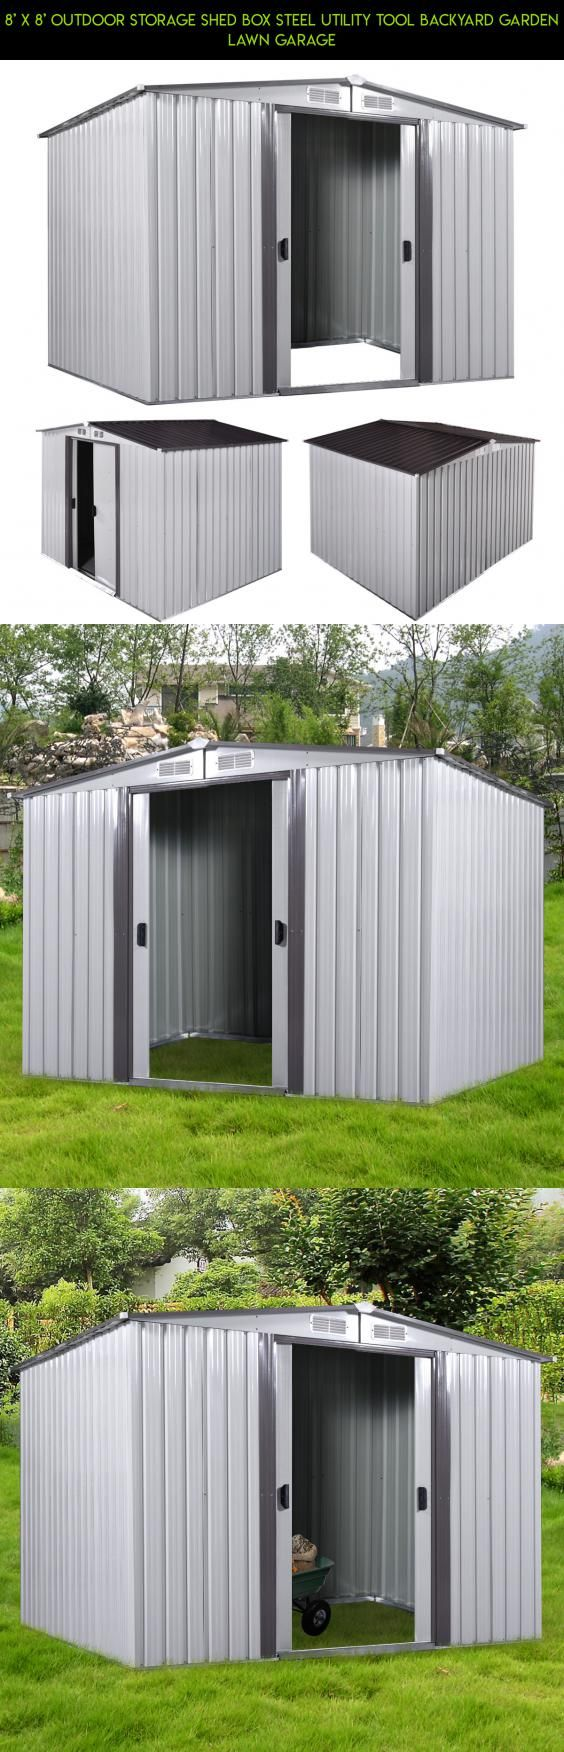 8' x 8' Outdoor Storage Shed Box Steel Utility Tool Backyard Garden Lawn Garage #tech #gadgets #8x8 #technology #parts #shopping #kit #drone #products #racing #plans #storage #fpv #camera